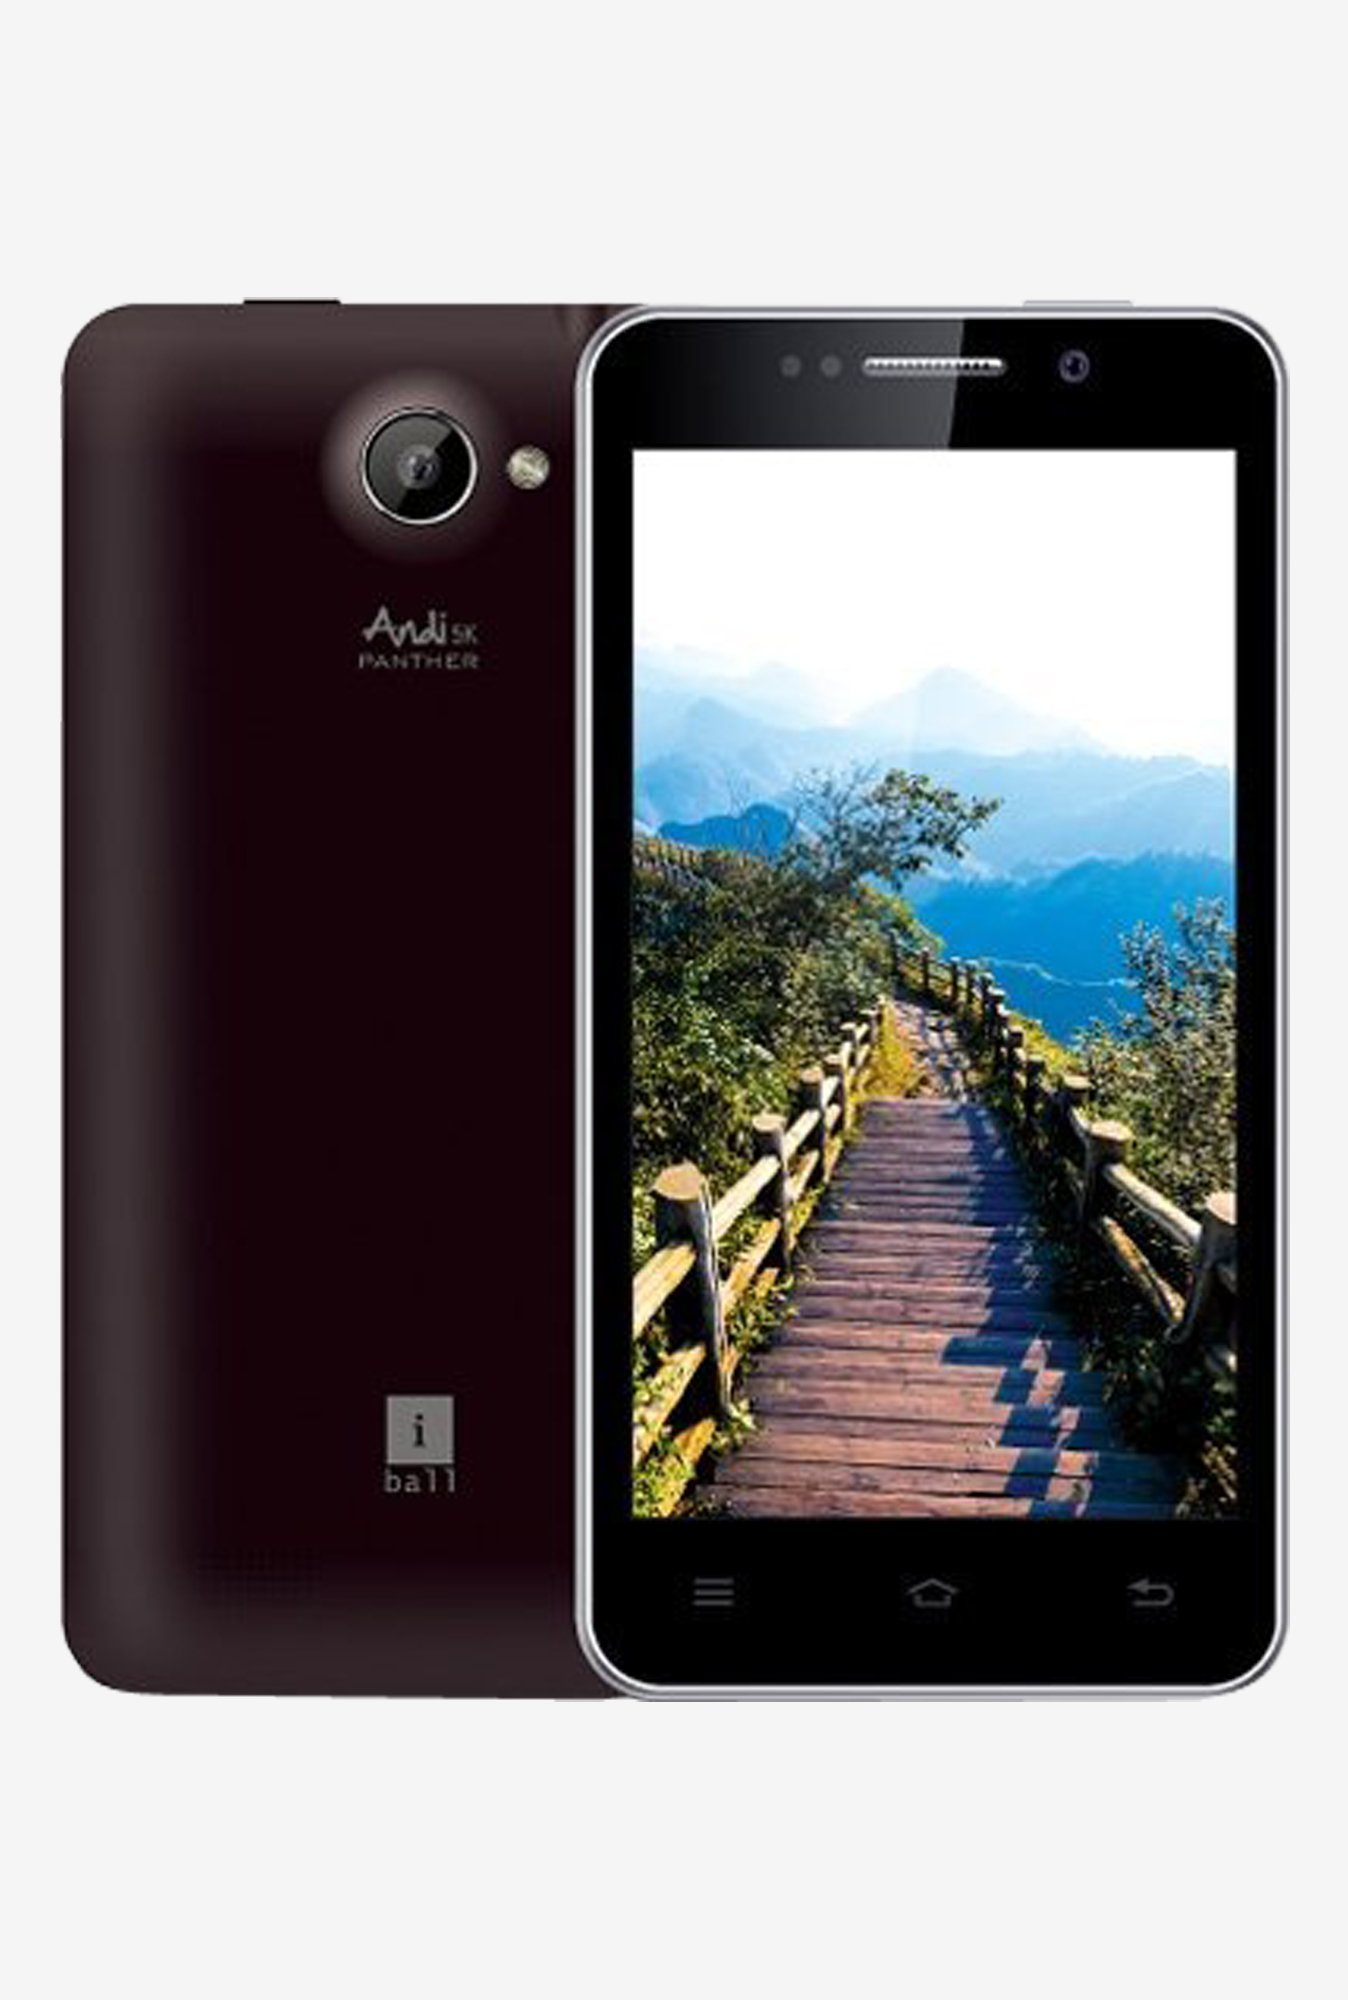 iBall Andi 5K Panther Octa Core Processor 5.0 LCD (Silver)